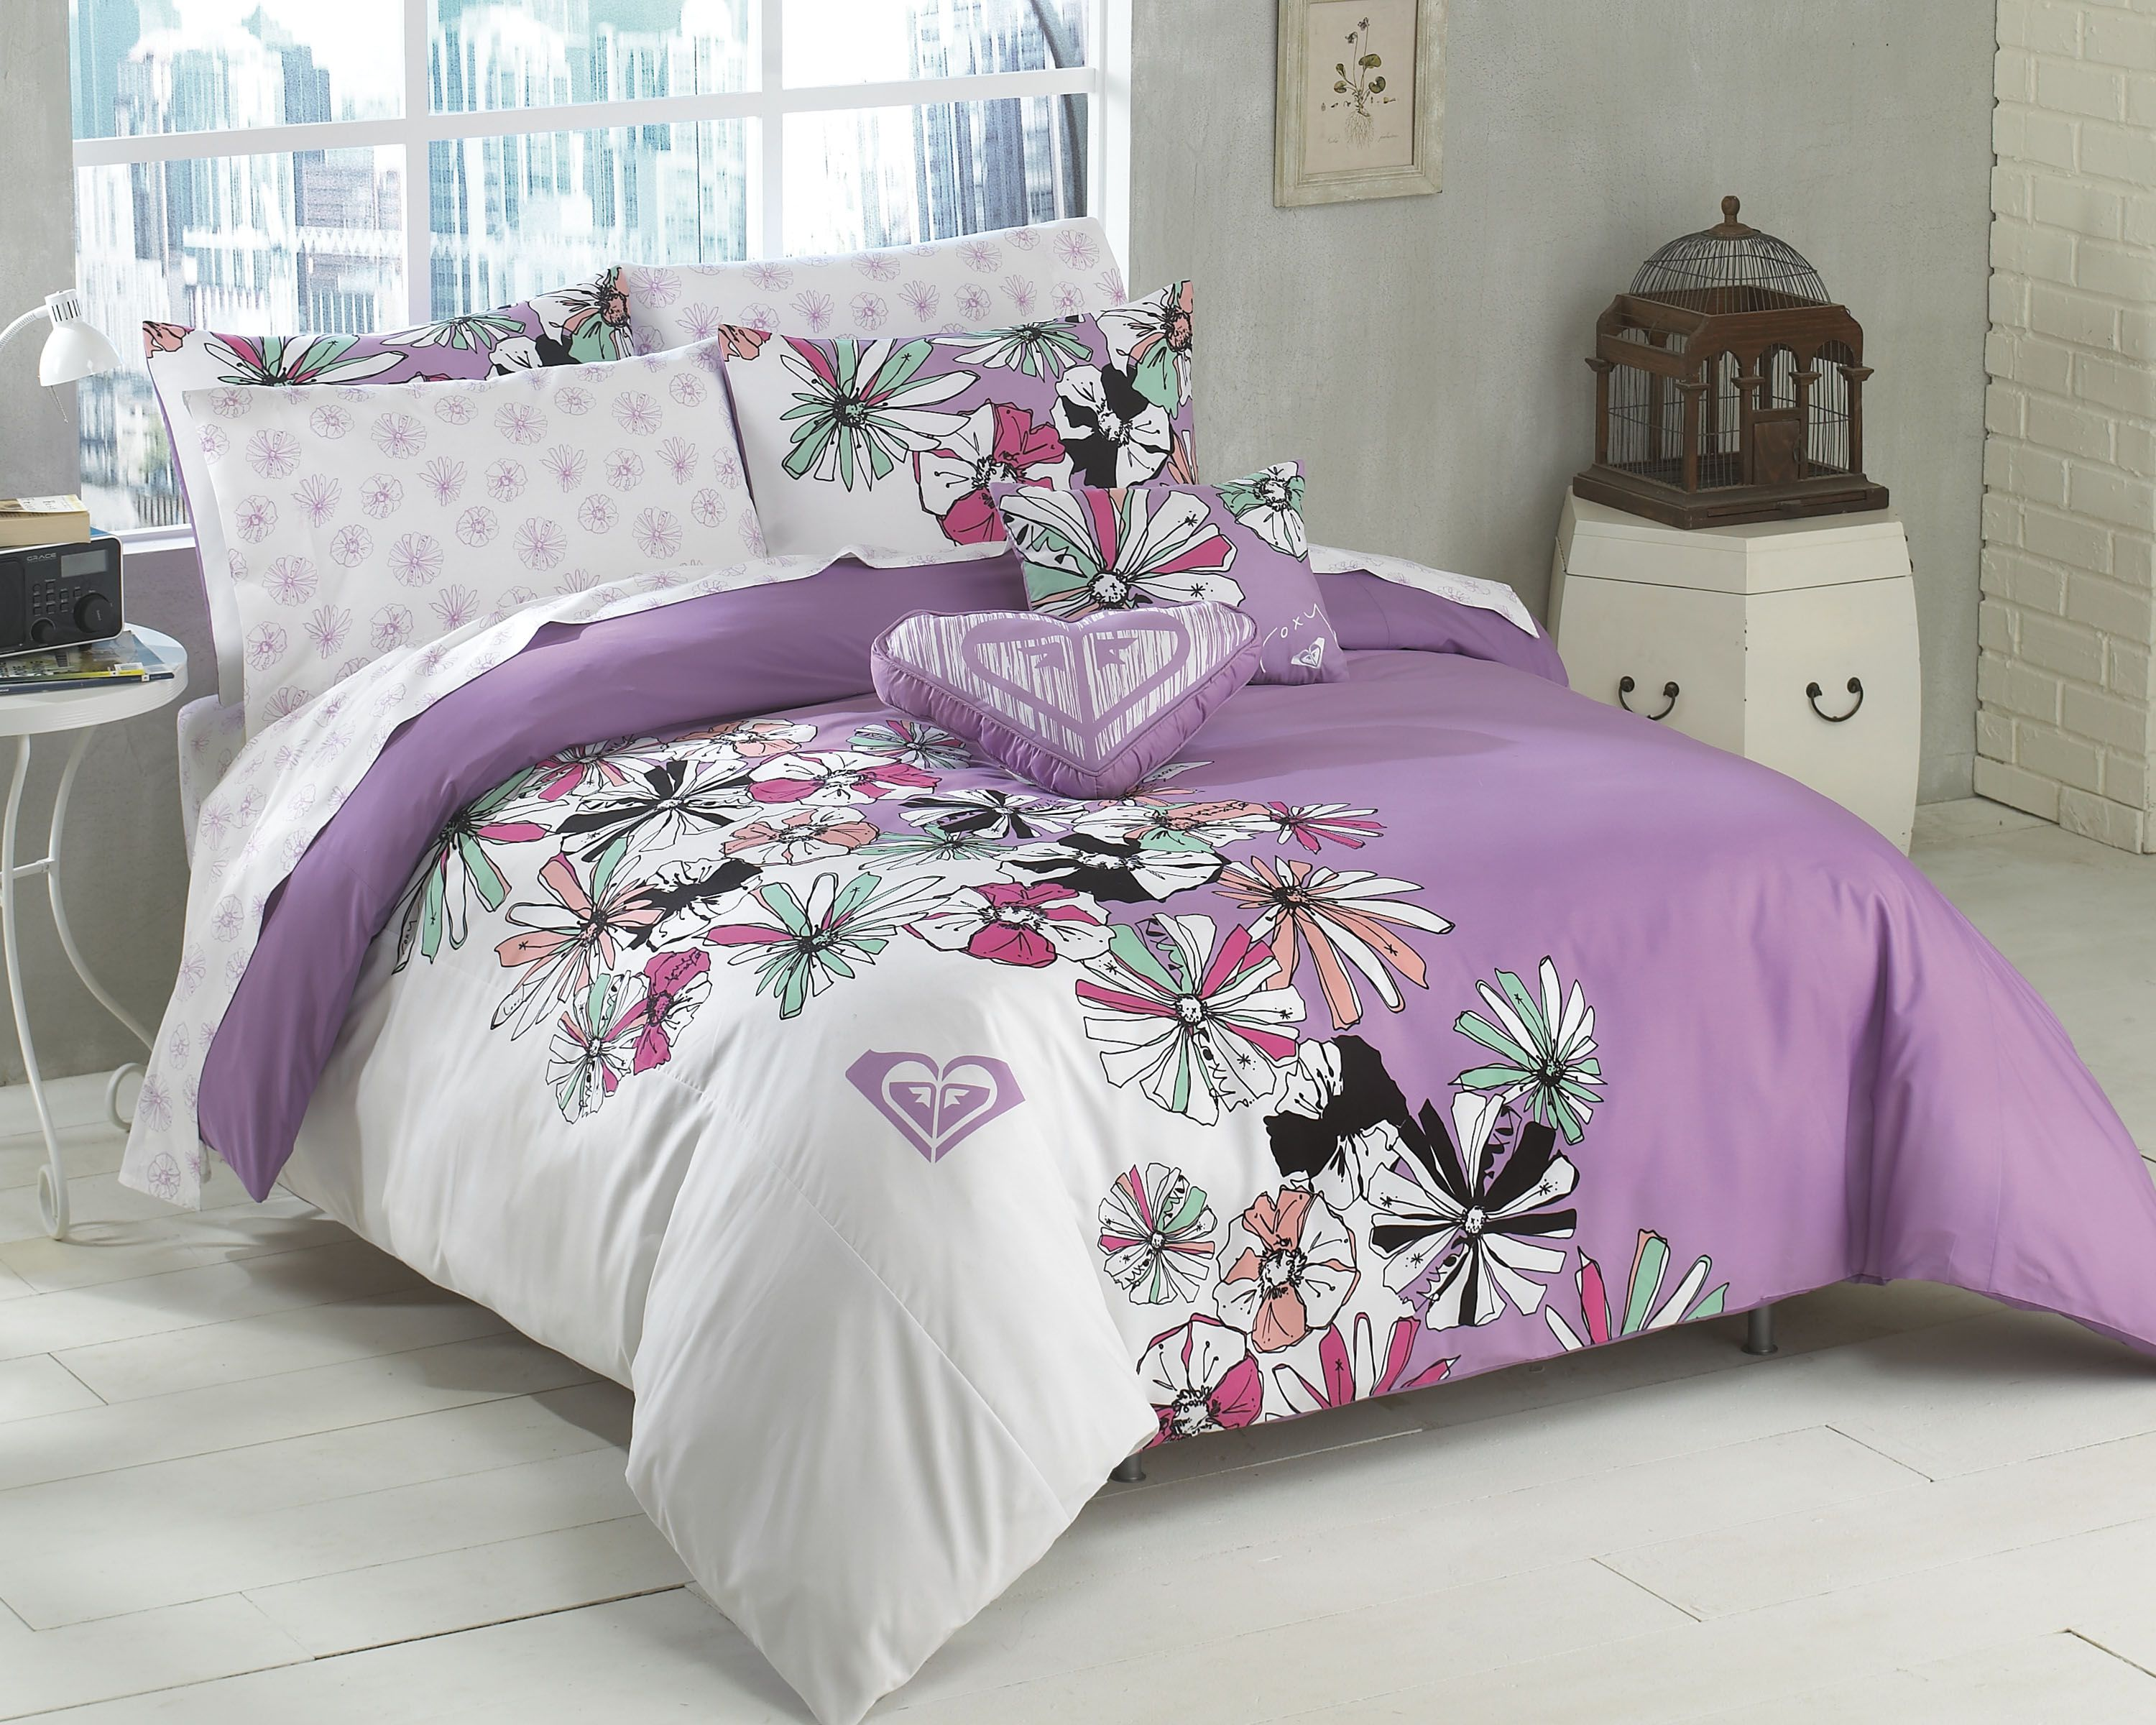 Bed Bath And Beyond Bedding Favorite Q View Full Size